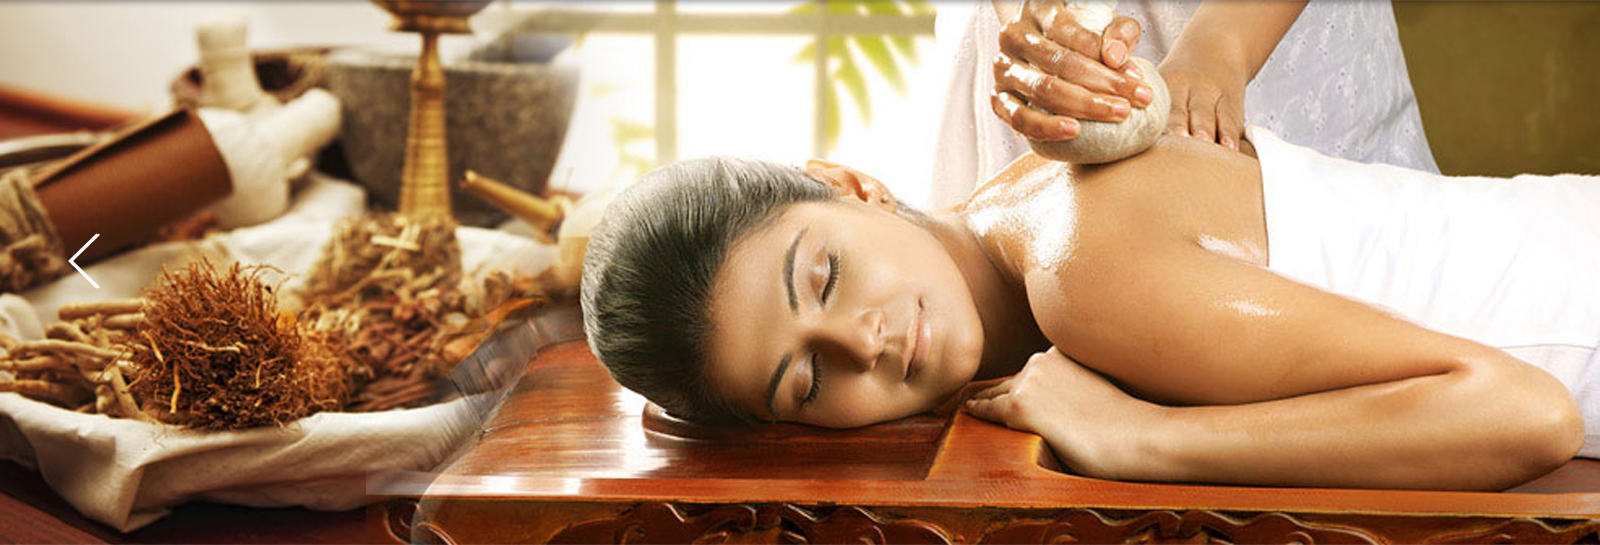 Ayurveda massages in Bulgaria | Ayurveda Clinic Bansko